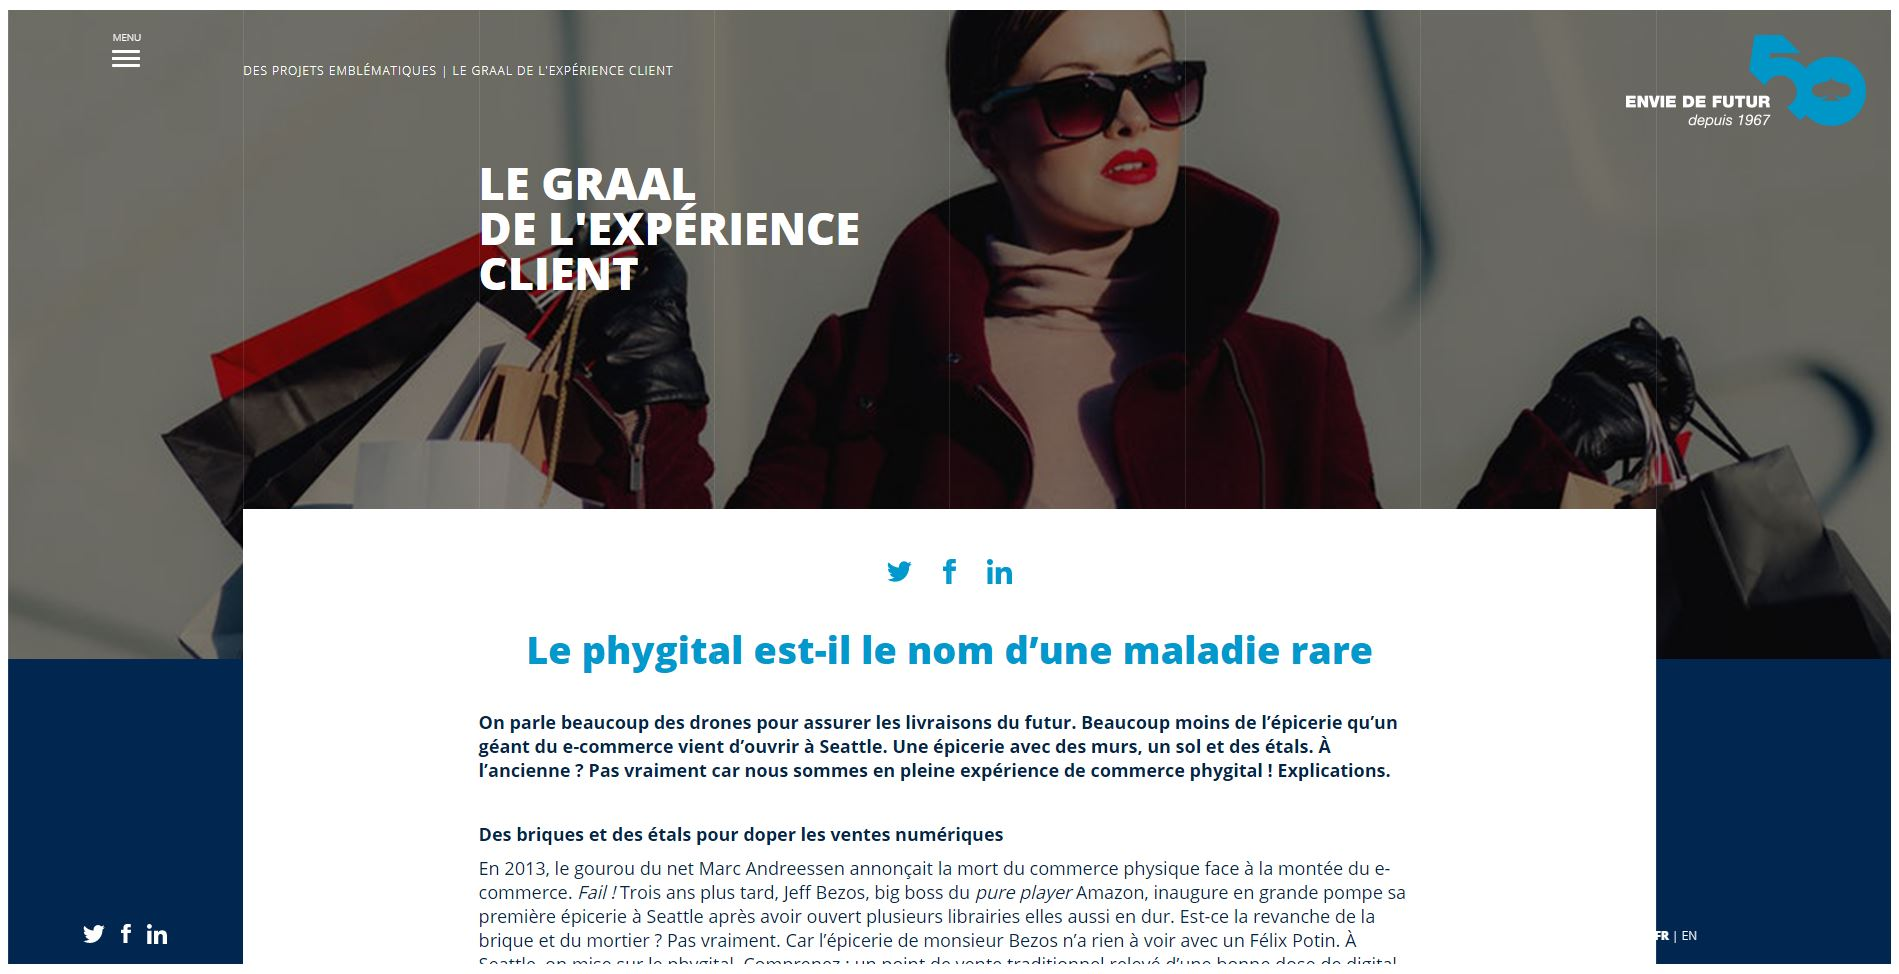 Capgemini50_Site_Article